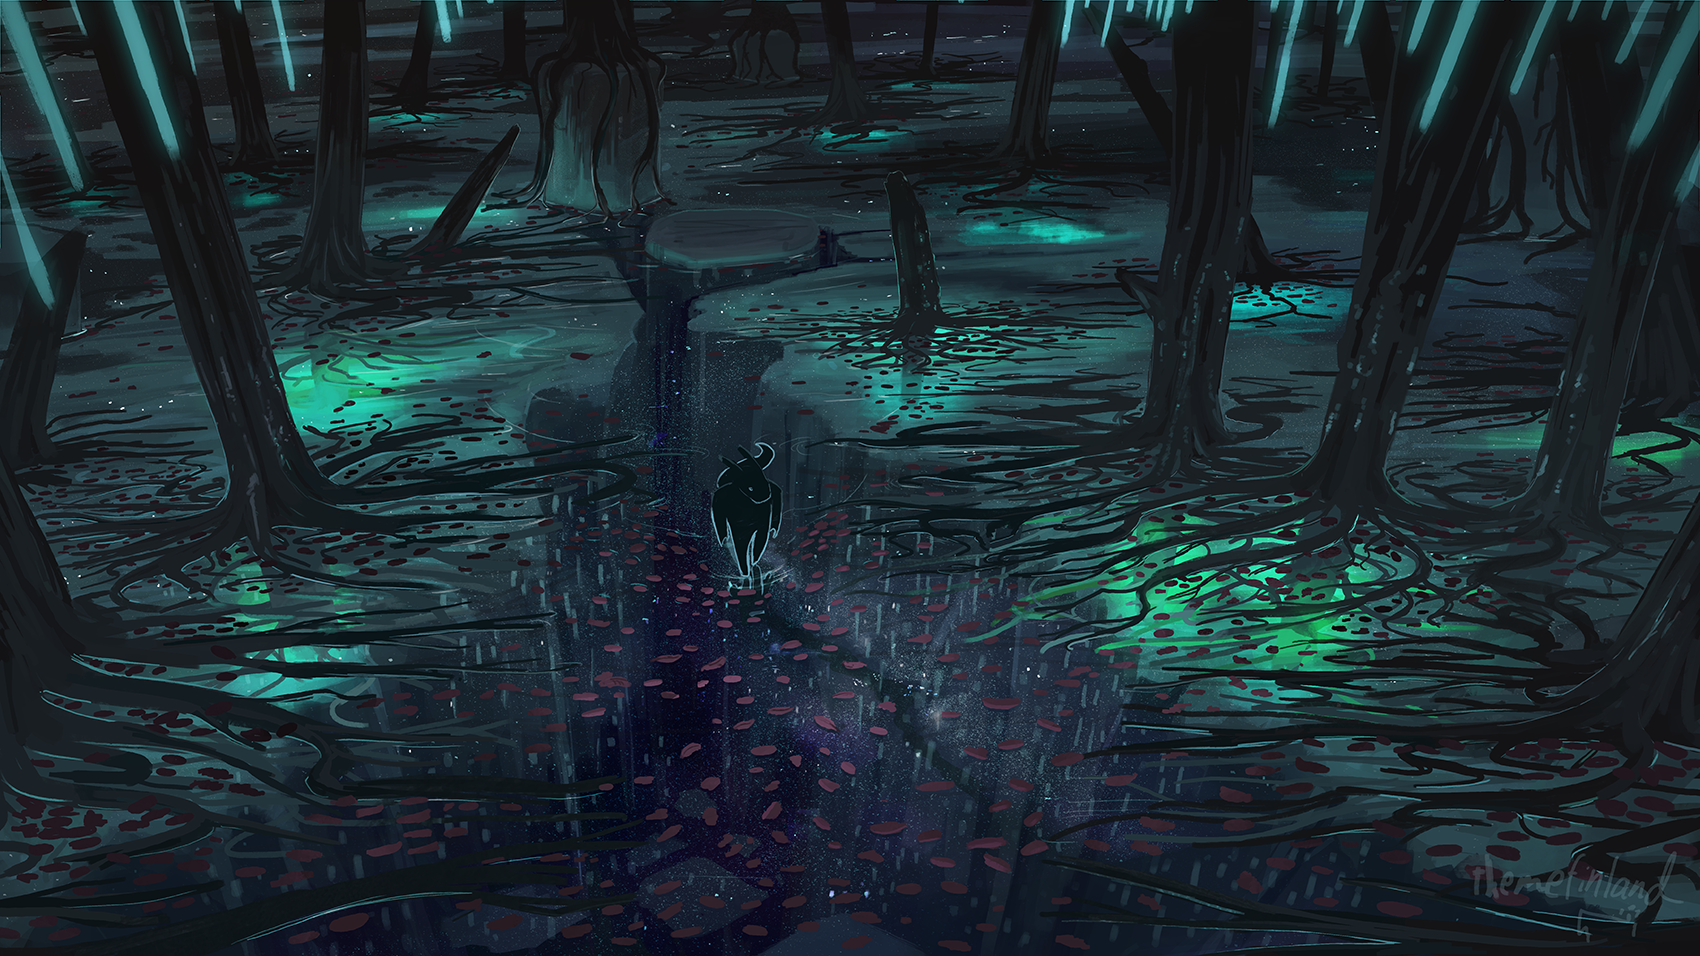 Forest of echoes